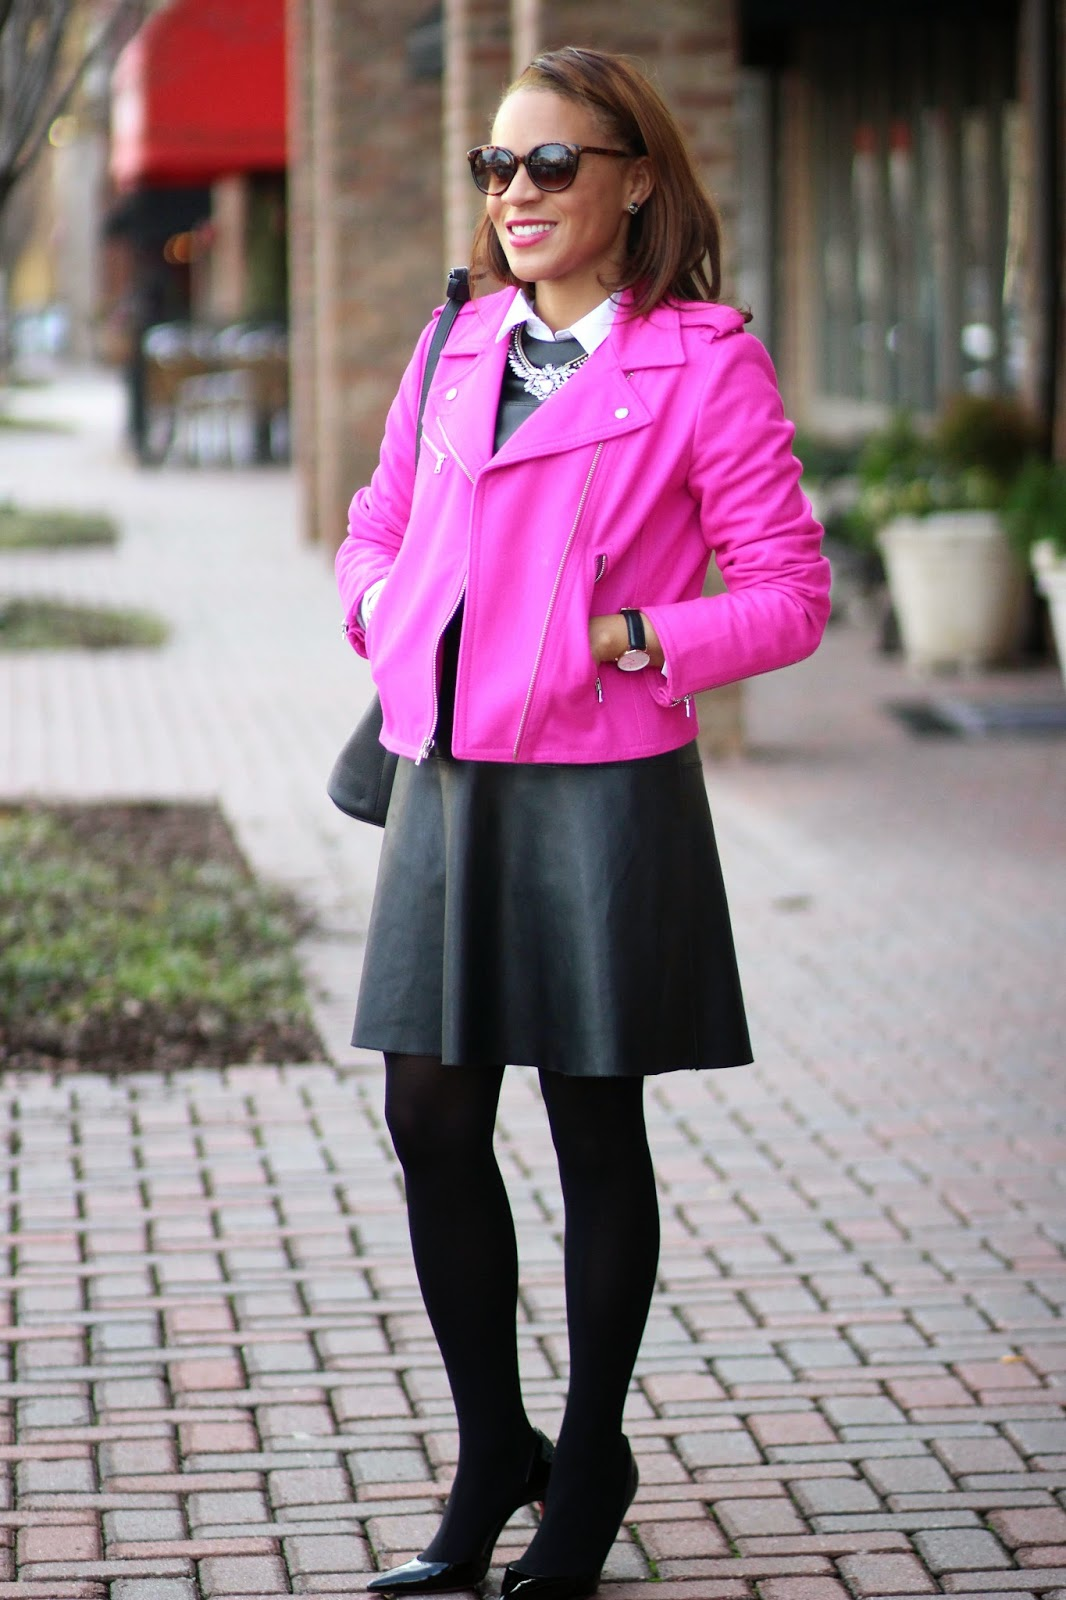 Nicole-to-the-Nines-pink-moto-jacket